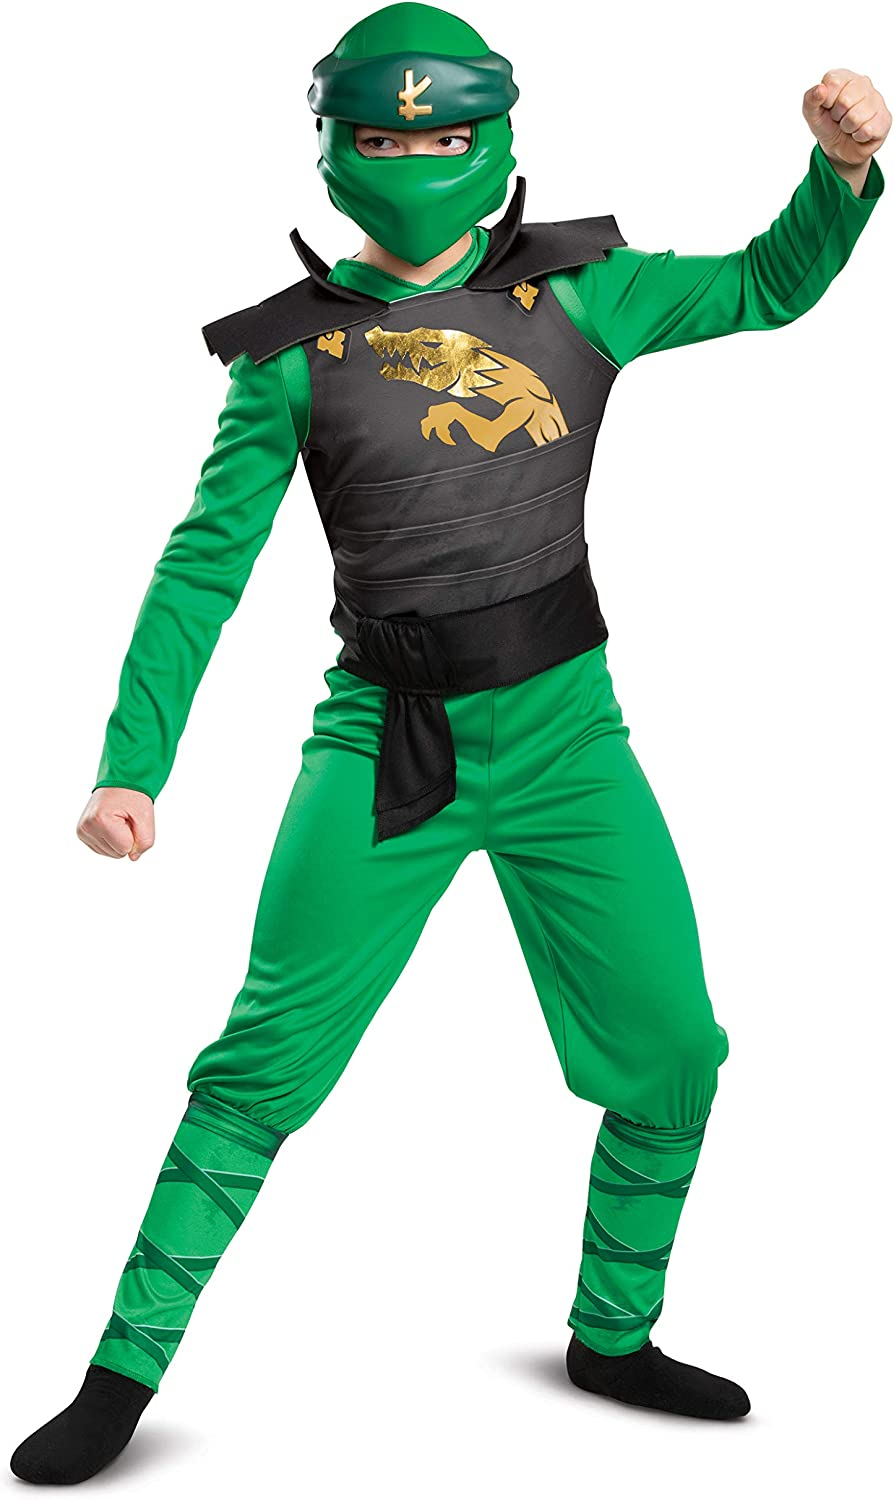 Classic Lego Ninjago Legacy Themed Childrens Charcter Jumpsuit Child Size Small Lloyd Costume for Kids 4-6